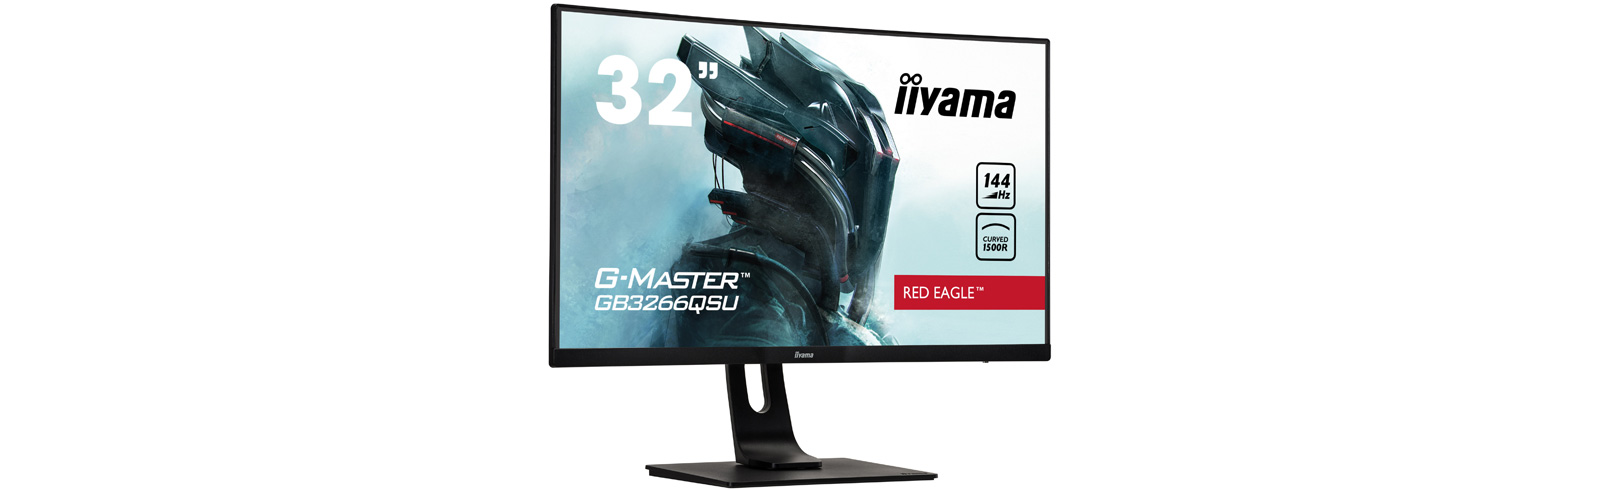 iiyama G-Master GB3266QSU-B1 is a new curved 144Hz QHD gaming monitor from the Red Eagle series